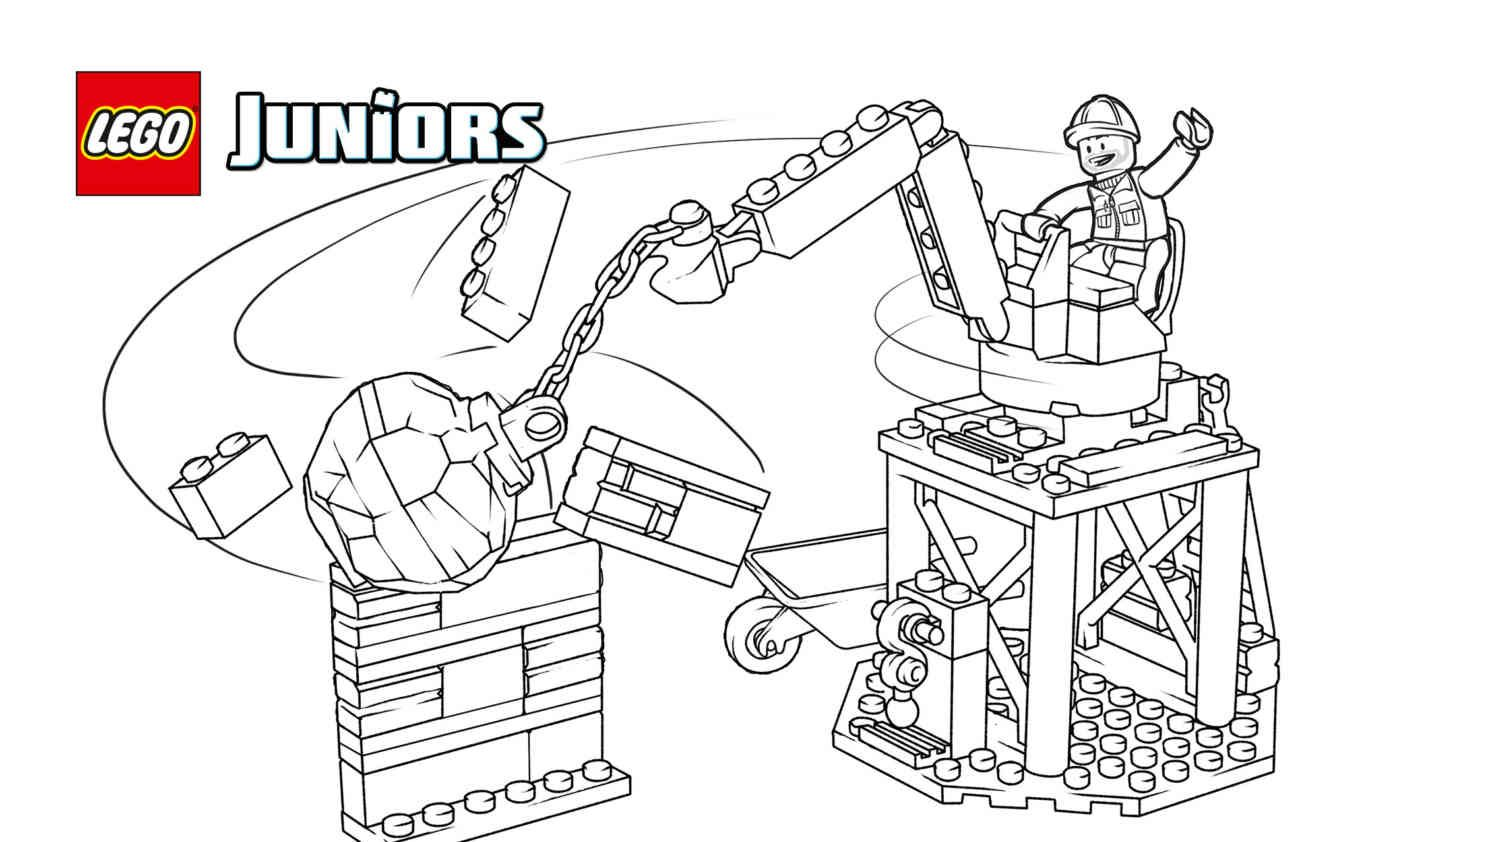 Coloring Pages Activities Lego Coloring Pages Lego Coloring Coloring Pages